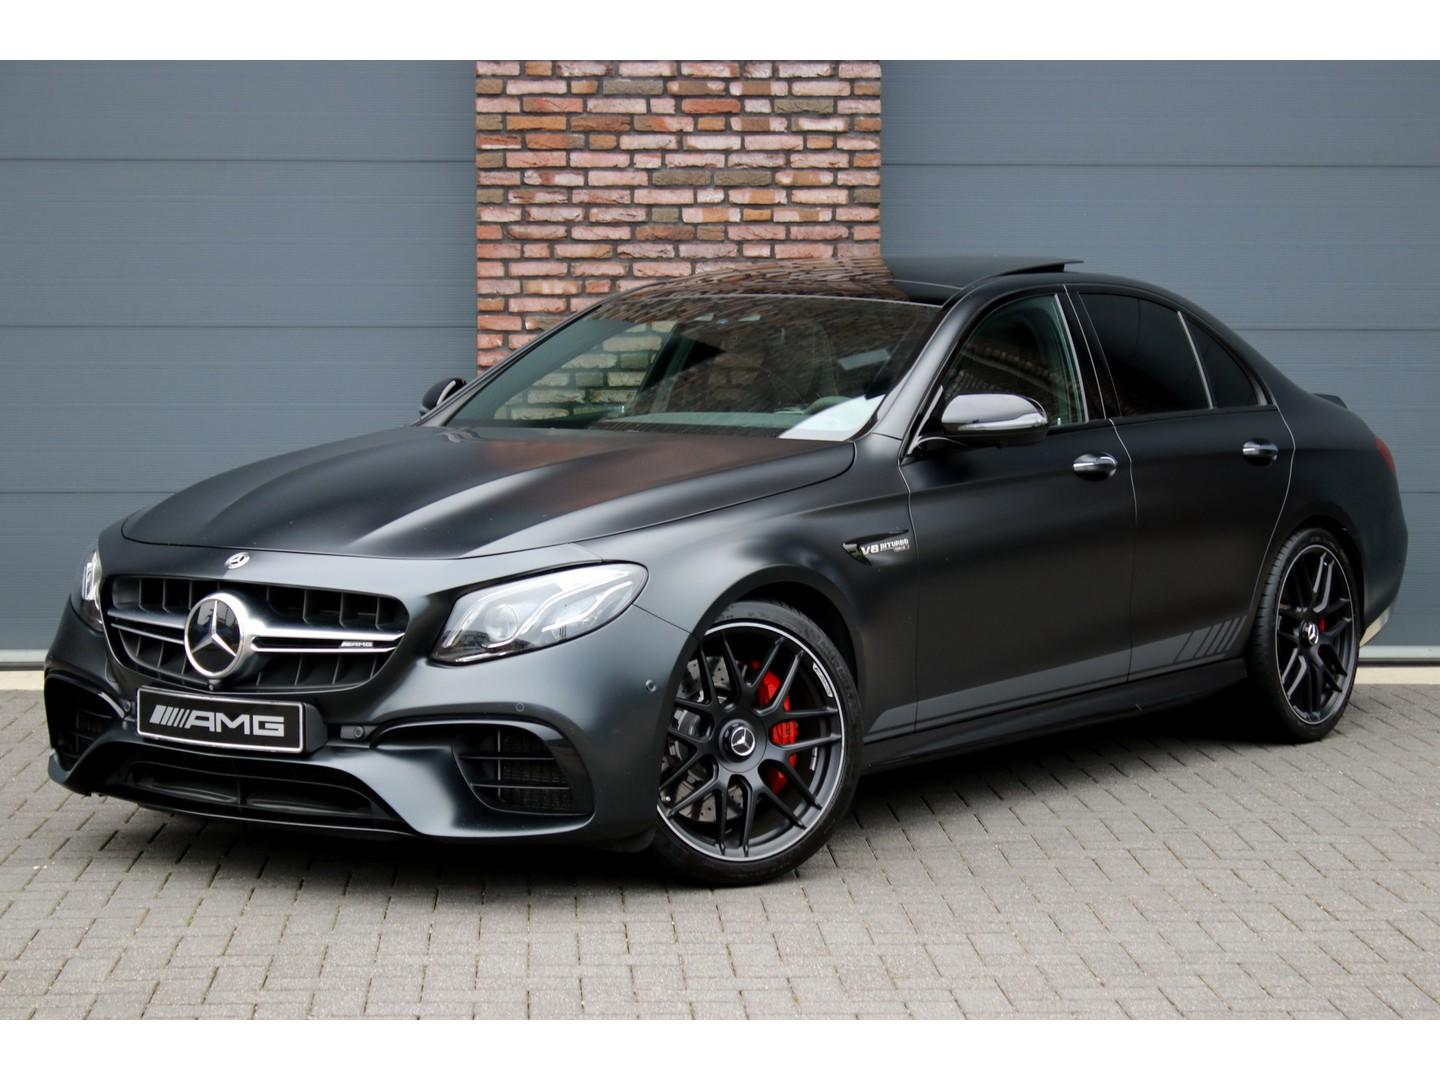 Mercedes-benz E-klasse 63 s amg 4-matic premium plus edition 1, luchtvering, distronic pro, panoramadak, performance stoelen, head-up, keyless-go, surround camera, burmester, carbon, designo, memory, etc.